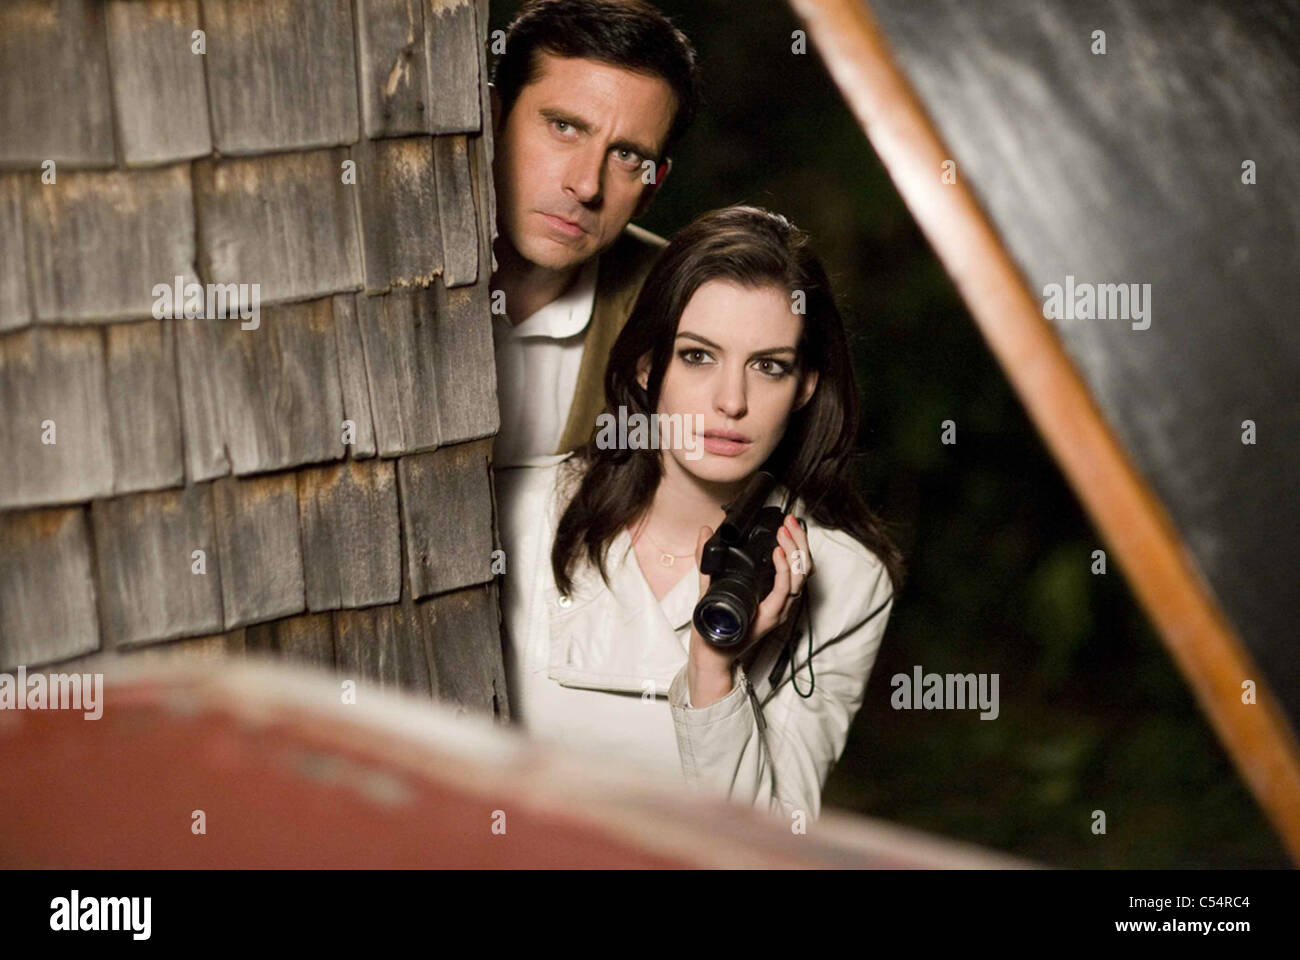 GET SMART 2008 Warner Bros film with Anne Hathaway and Steve Carell - Stock Image